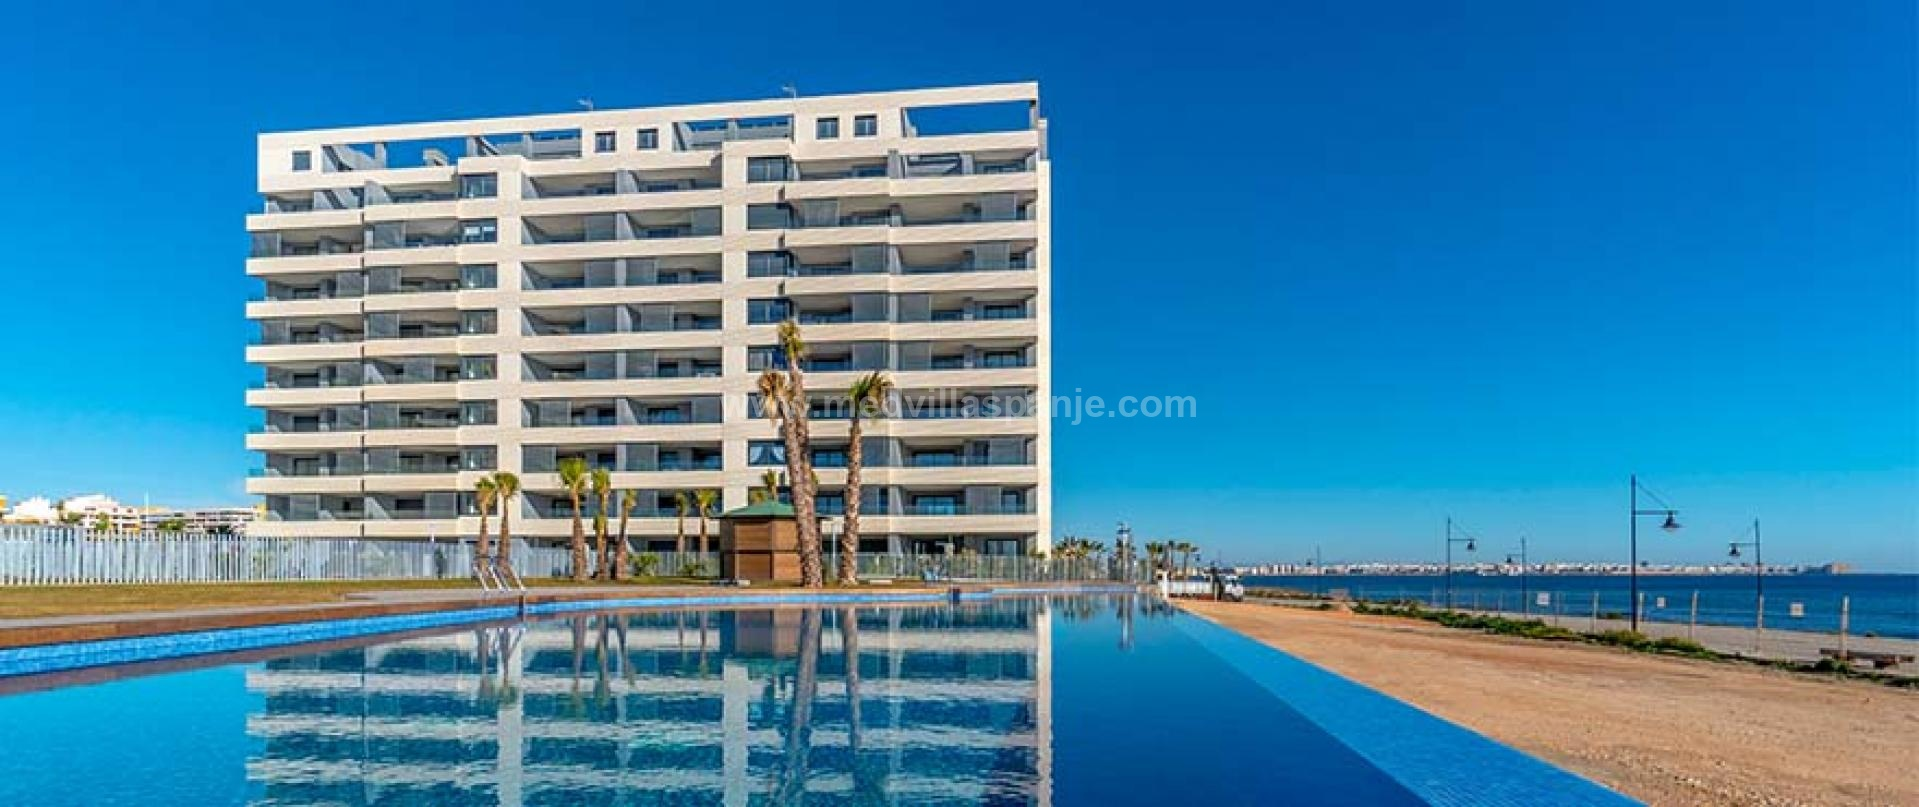 Apartment with sea view in Orihuela Costa, Spain in Medvilla Spanje